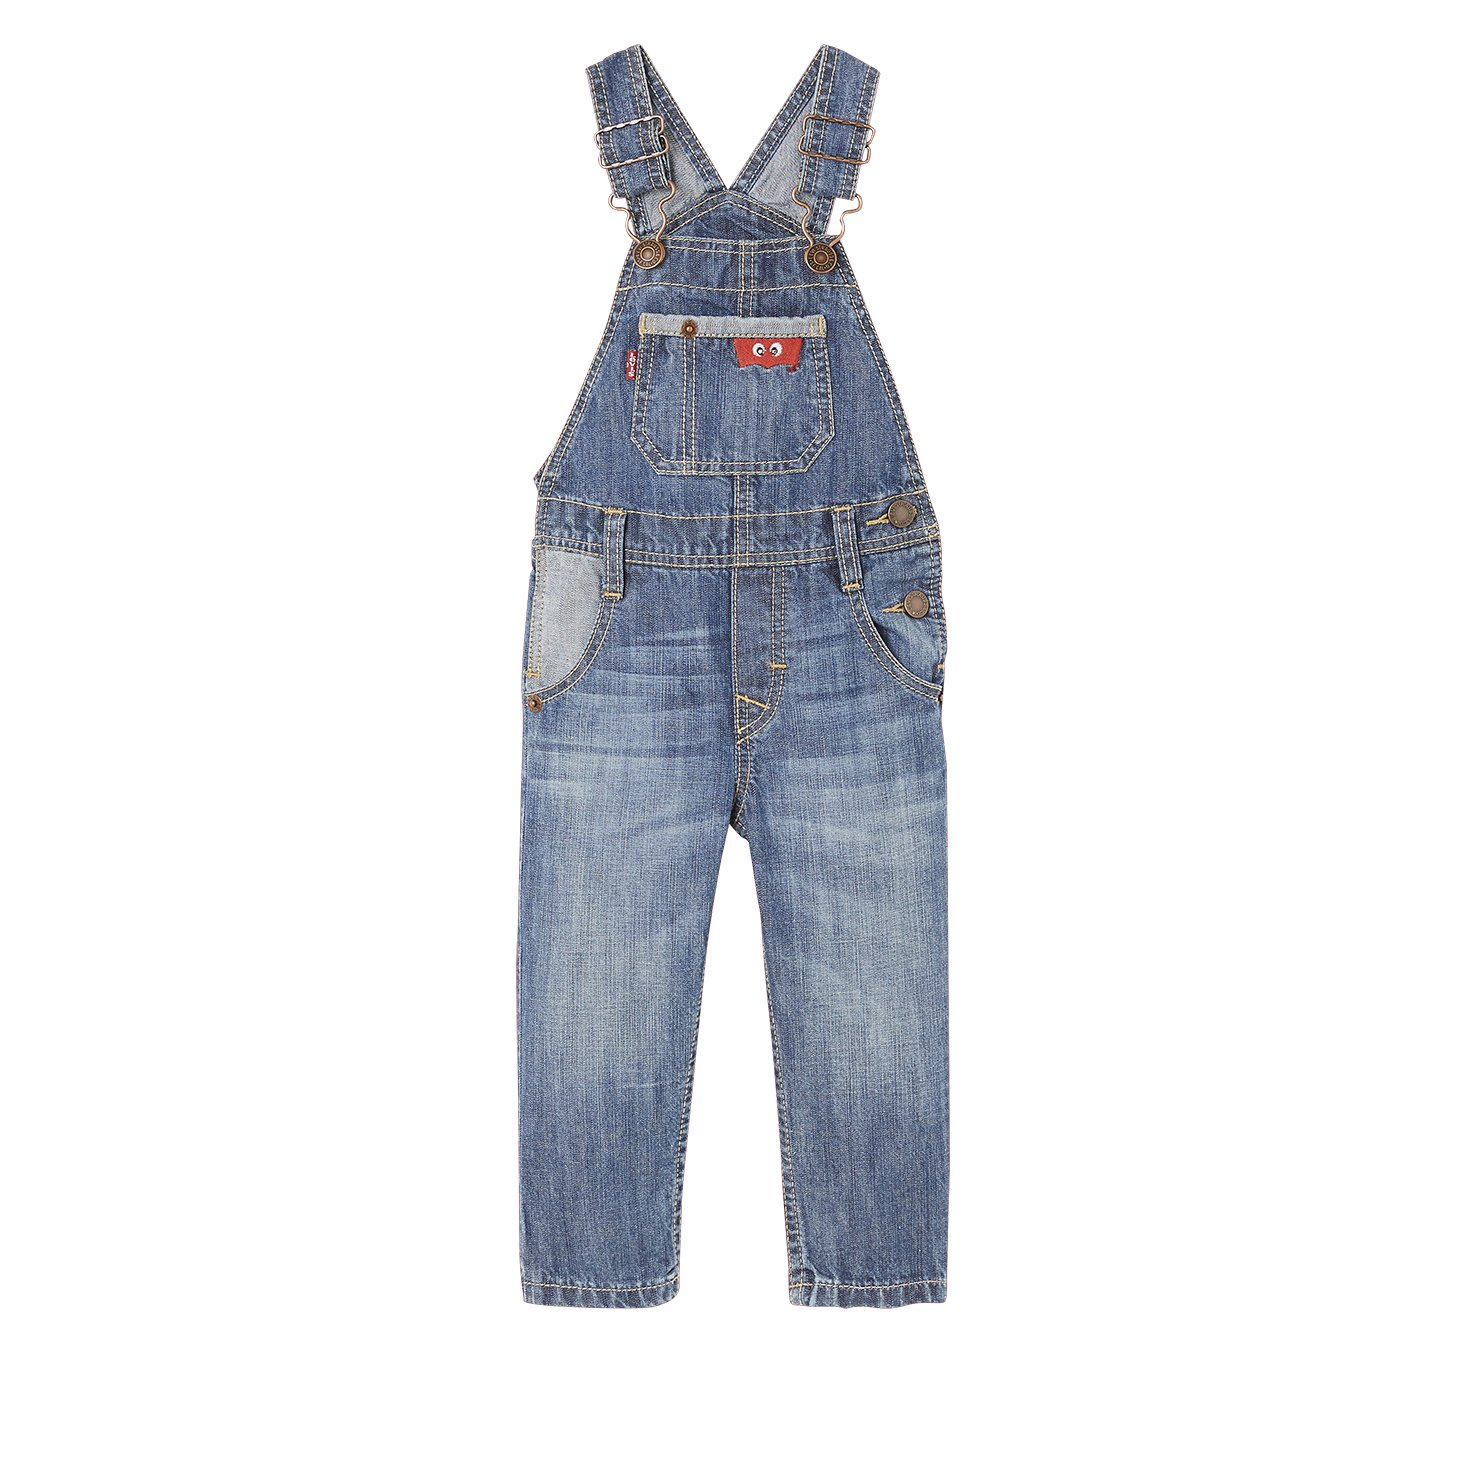 Levi's Baby Boys' Overall OLY Dungarees Levi' s Kids NL20004